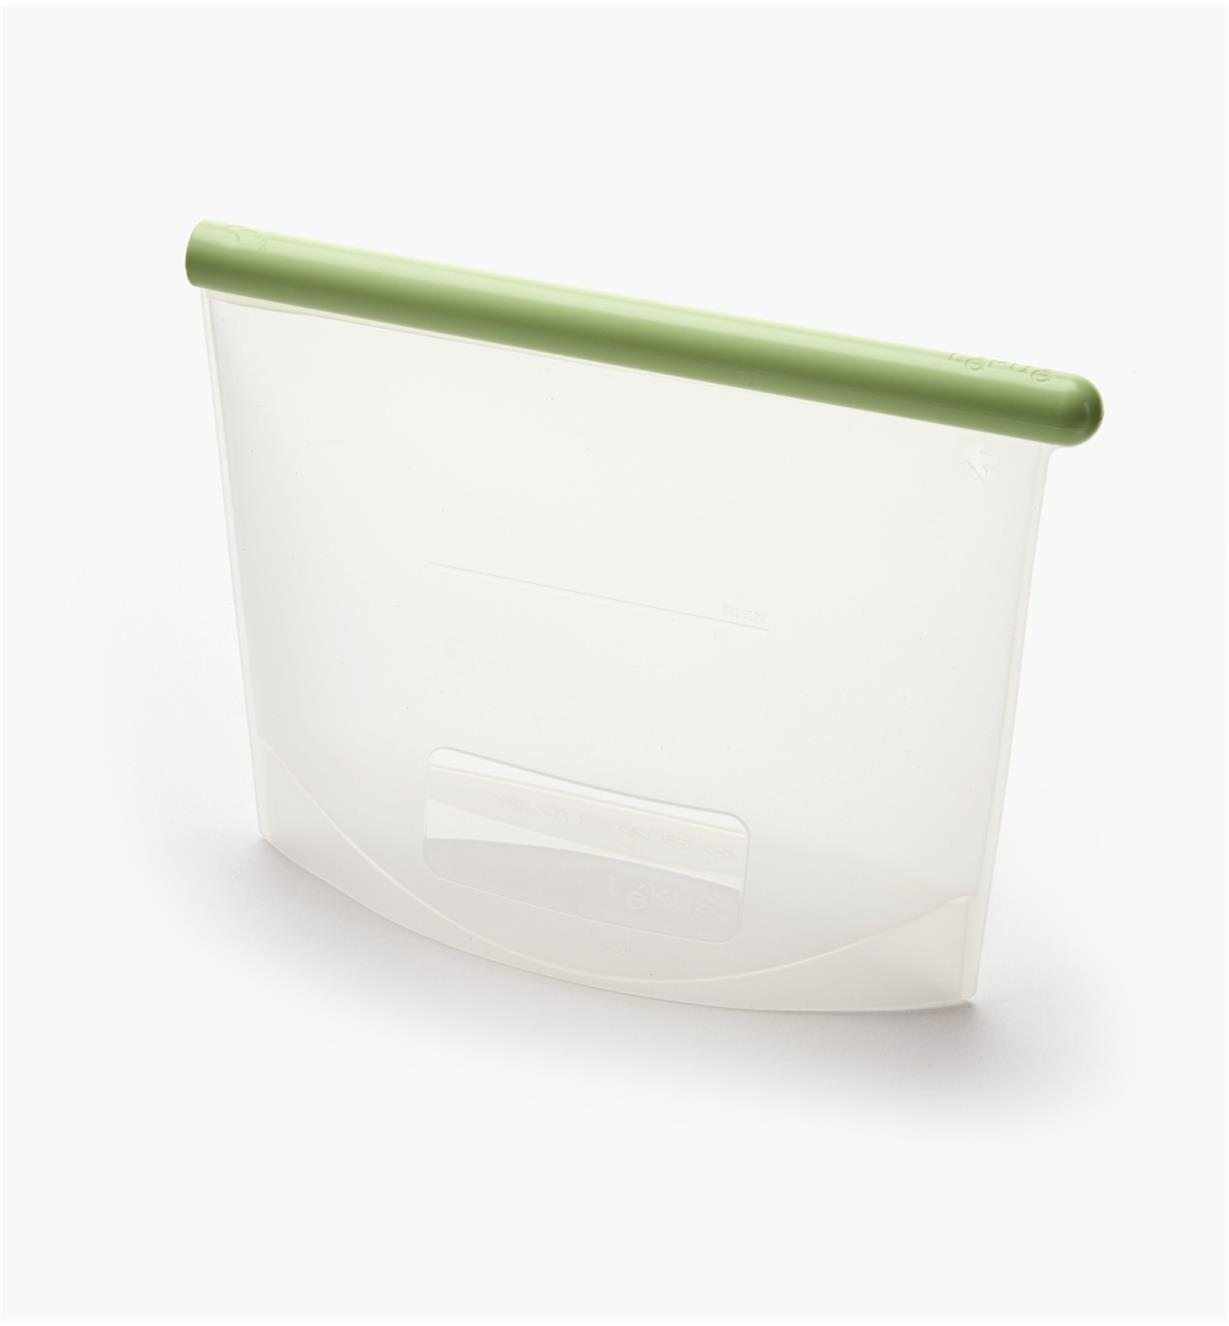 EV810 - Reusable Silicone Bag, 1000ml